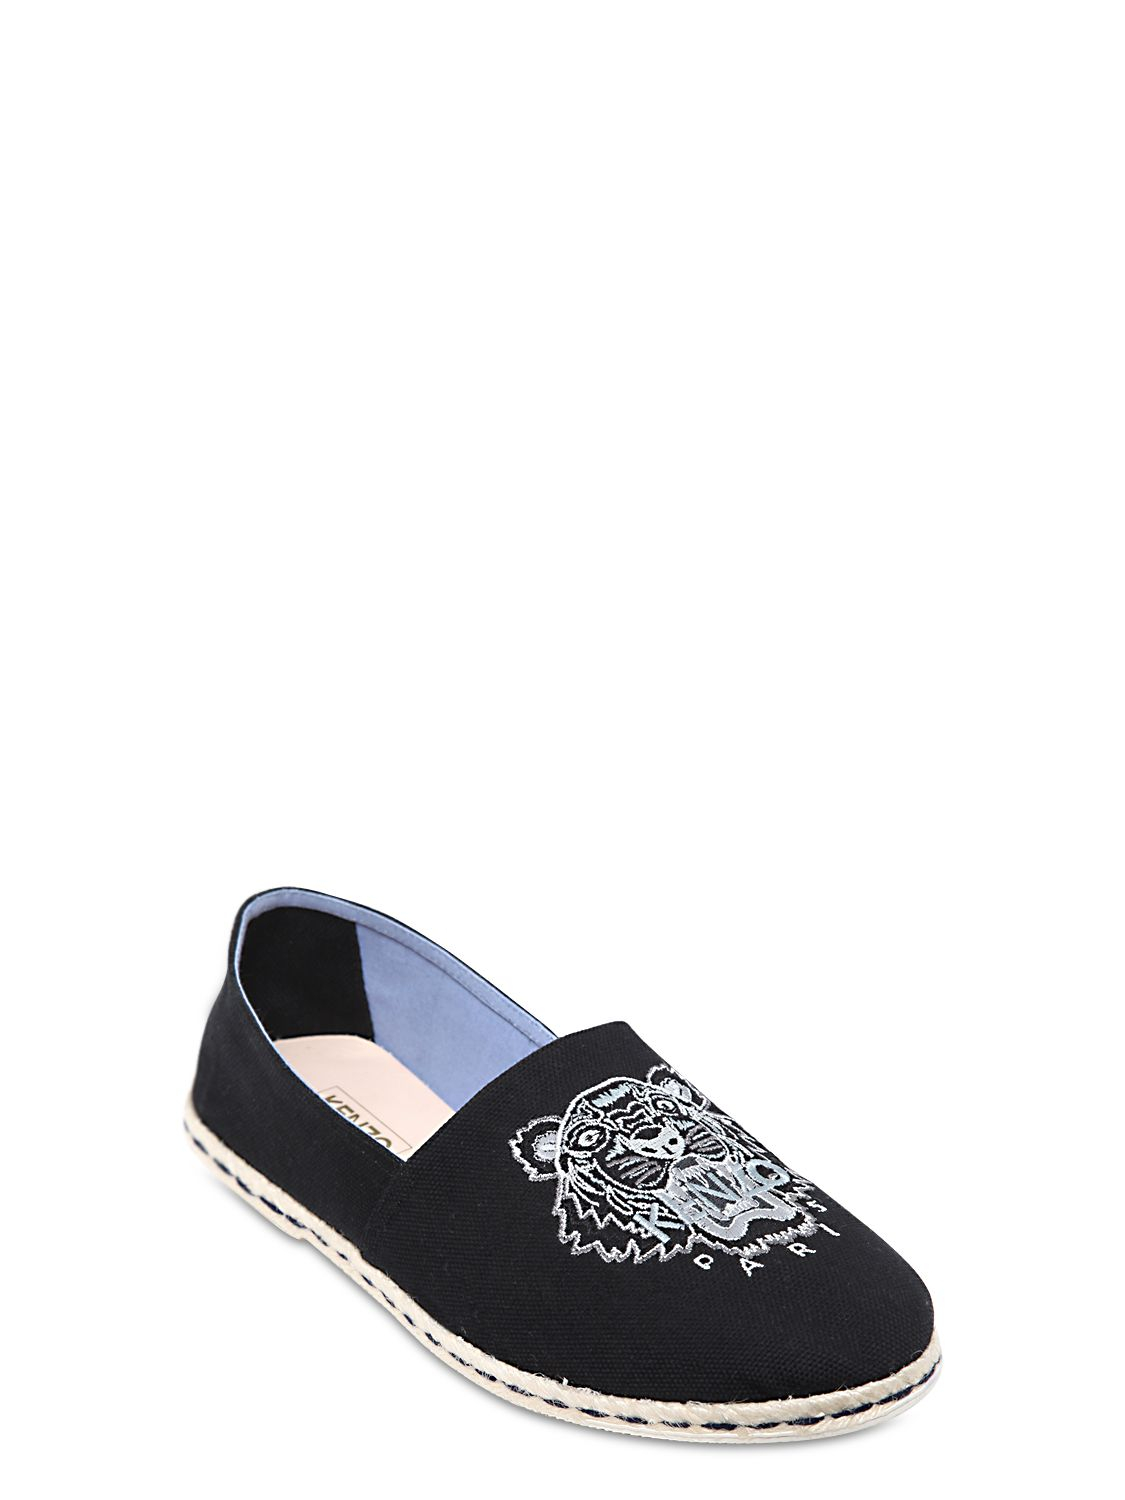 kenzo embroidered cotton canvas slip on shoes in black for